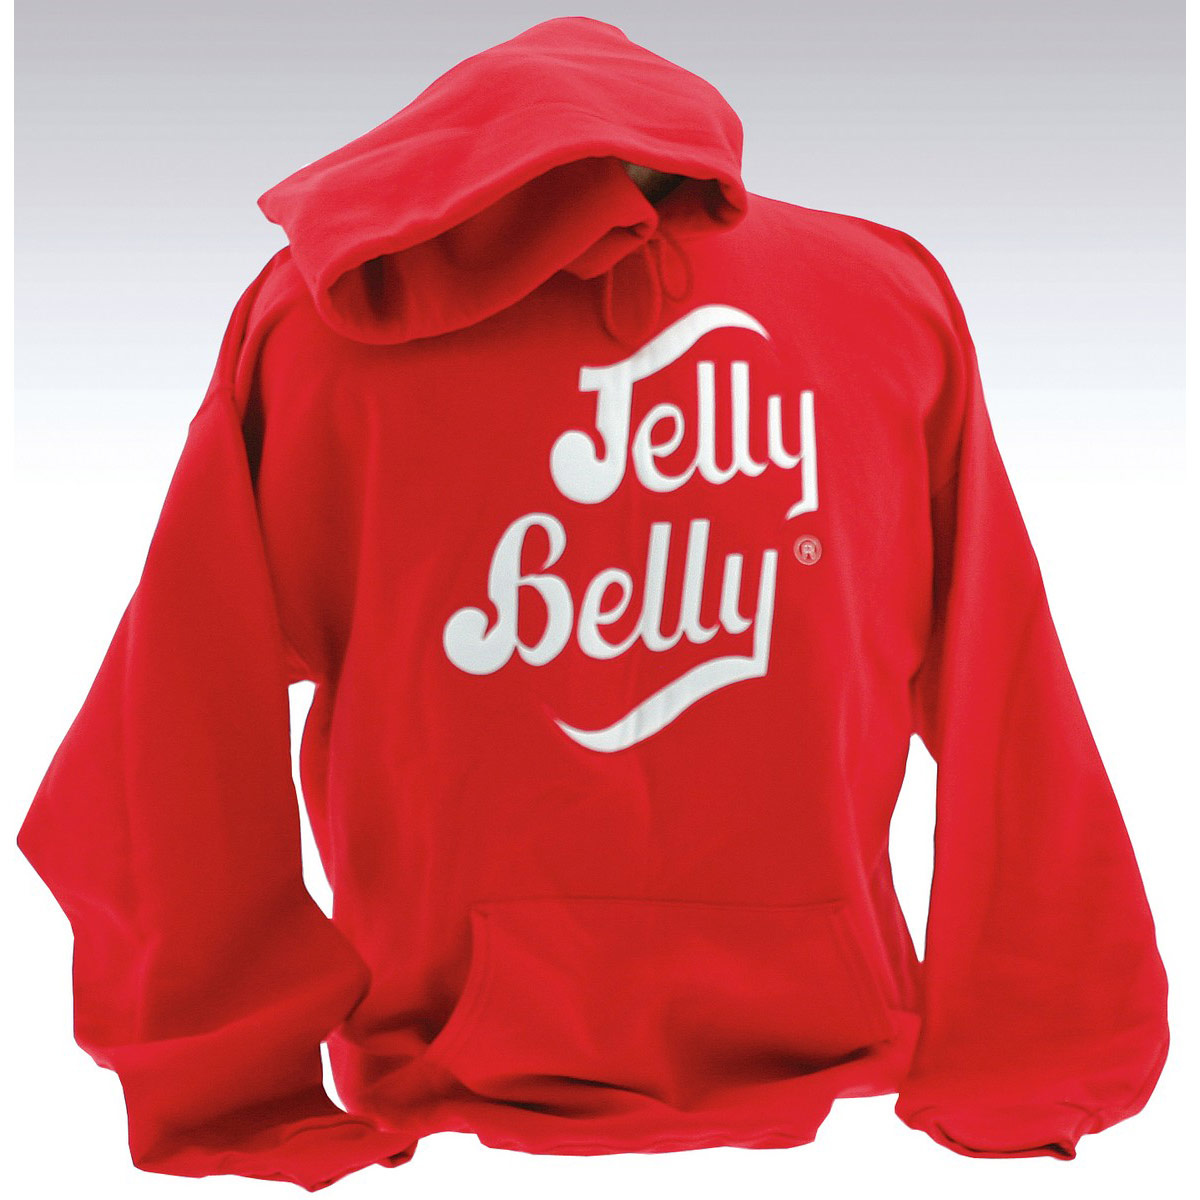 Jelly Belly Red Hooded Sweatshirt – Adult Small